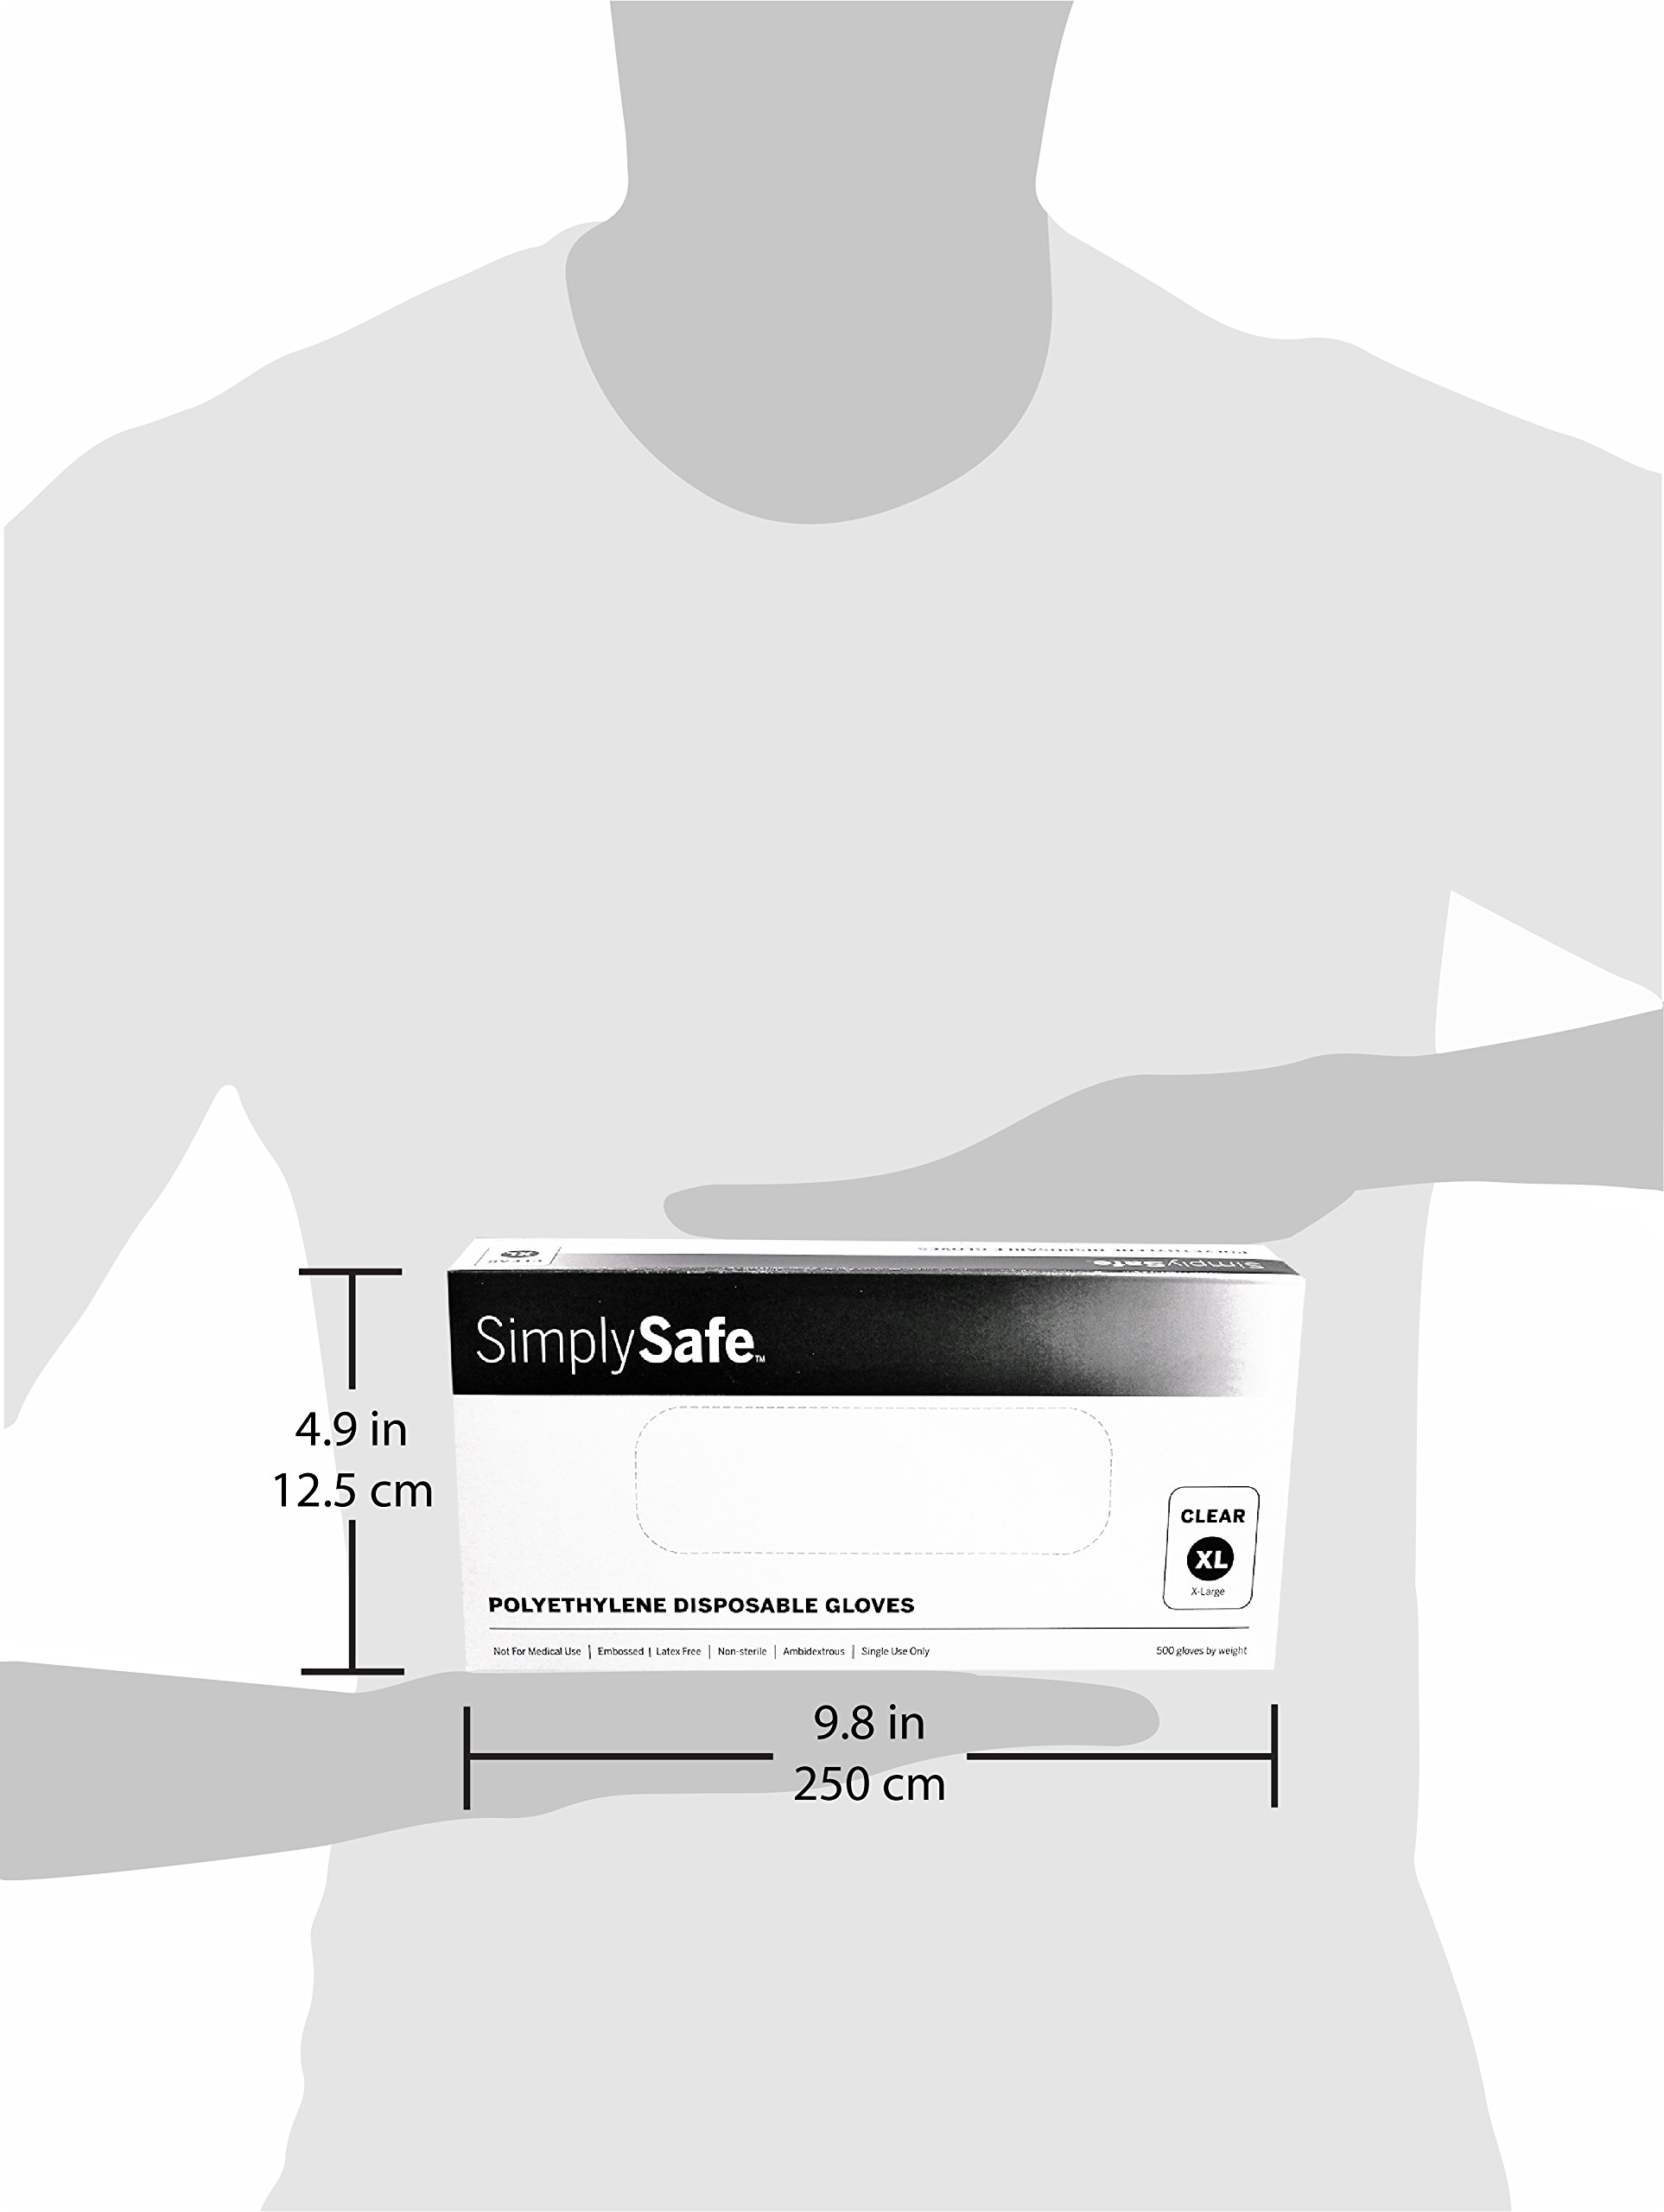 SimplySafe Poly Food Service Disposable Gloves, Translucent, 500 per Box/20 Boxes per case, Extra Large, Case of 10,000 by SimplySafe (Image #4)